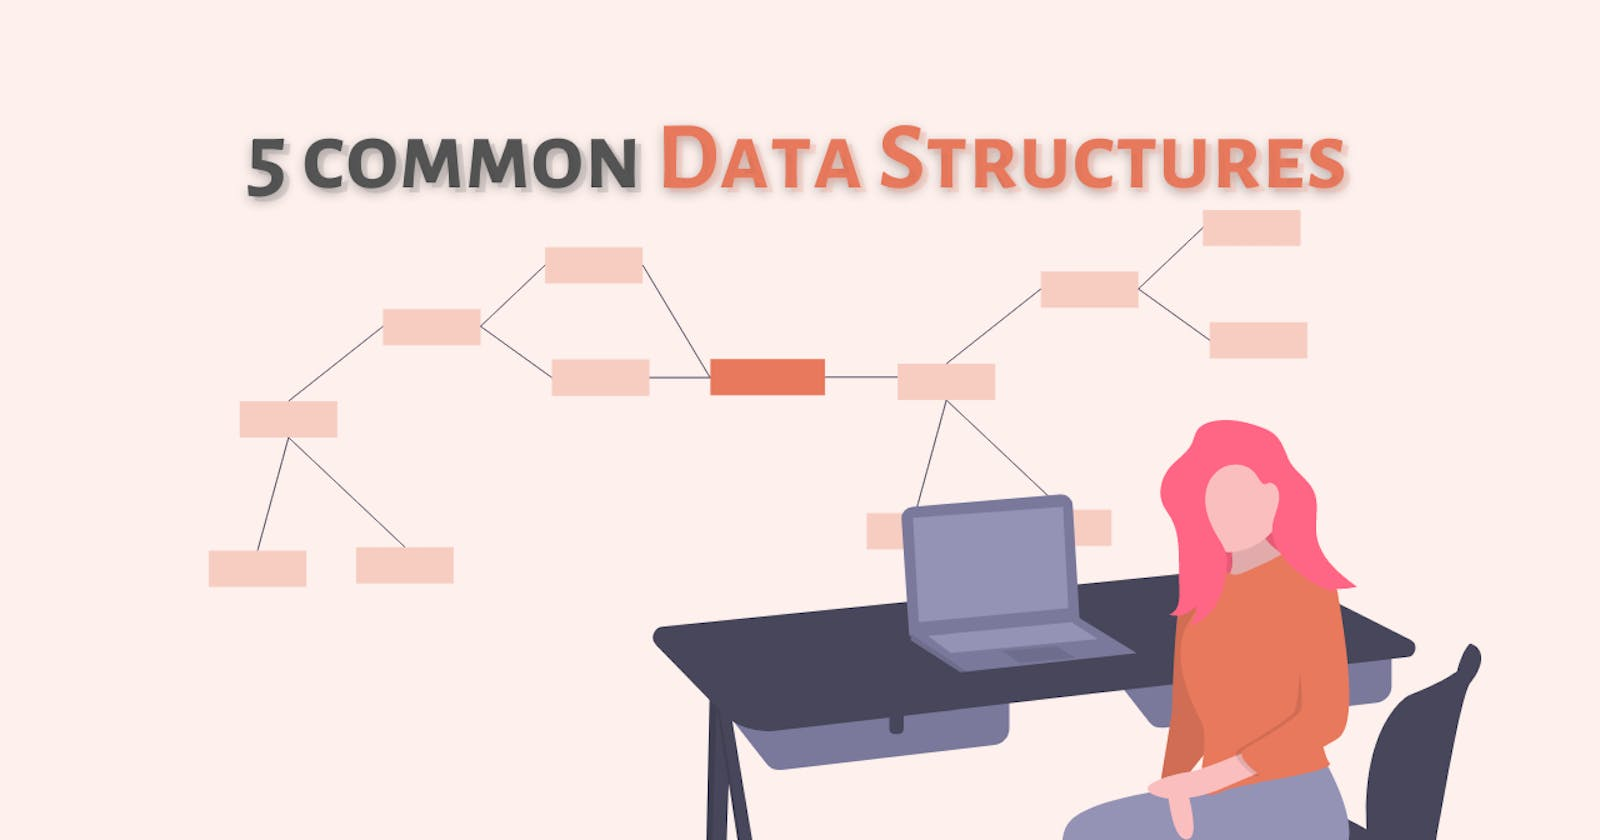 5 Common Data Structures